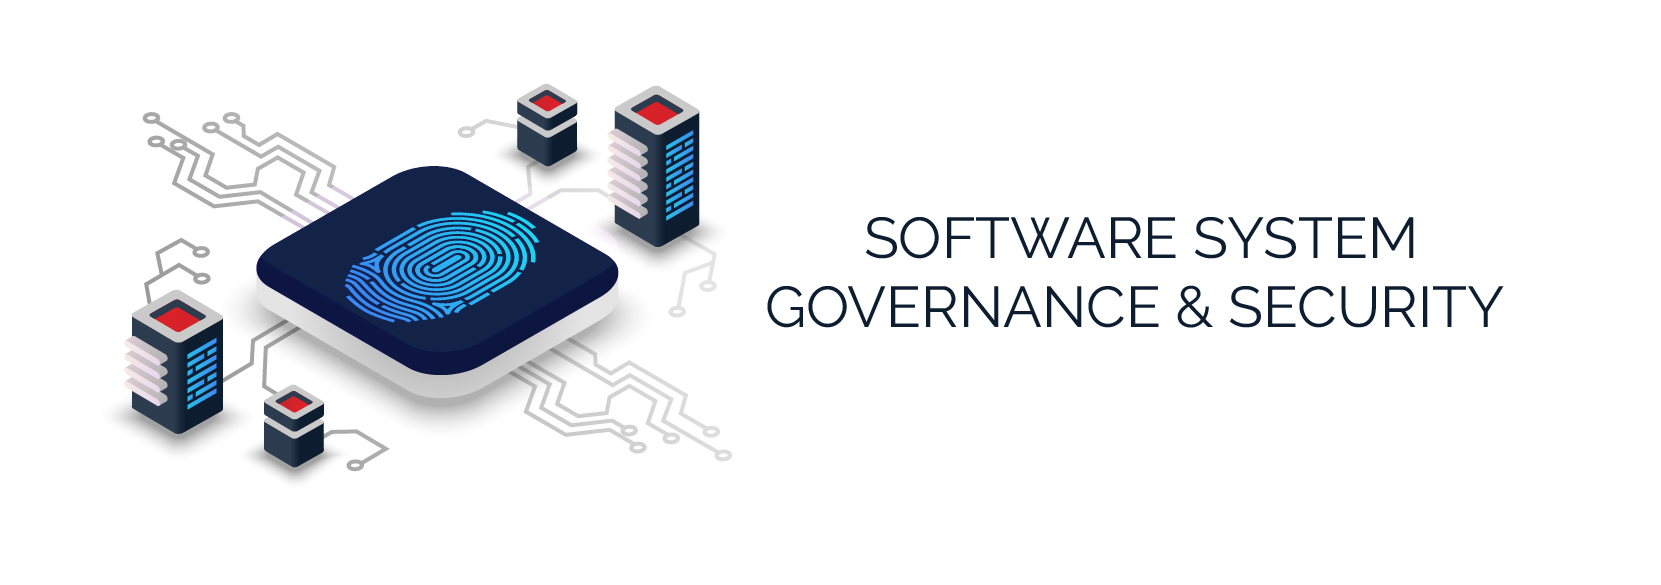 Software System Governance & Security